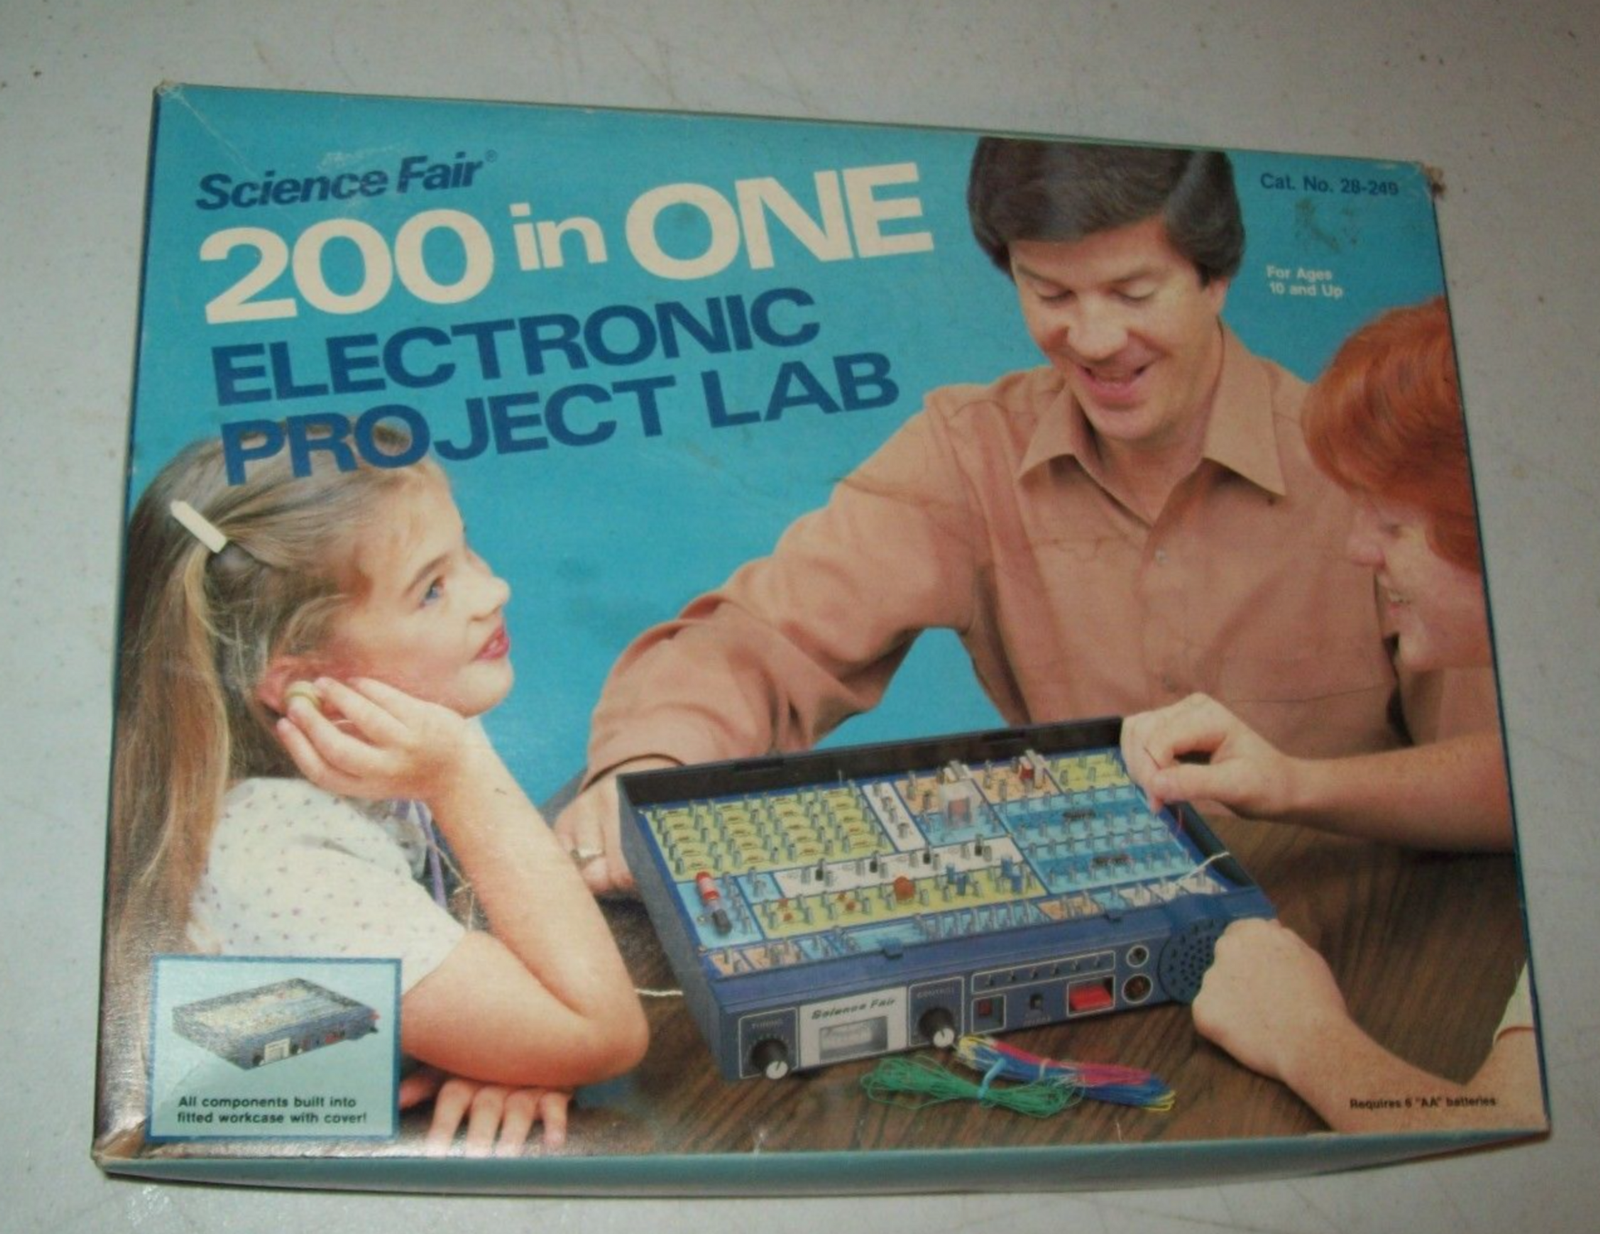 Electronic Project Kits Hands On With A Vintage 160 In 1 Projects Lab 200 Transistor Circuits There Were Other As Well Science Fair 28249 Ebay From 1981 An Expanded Version Of The